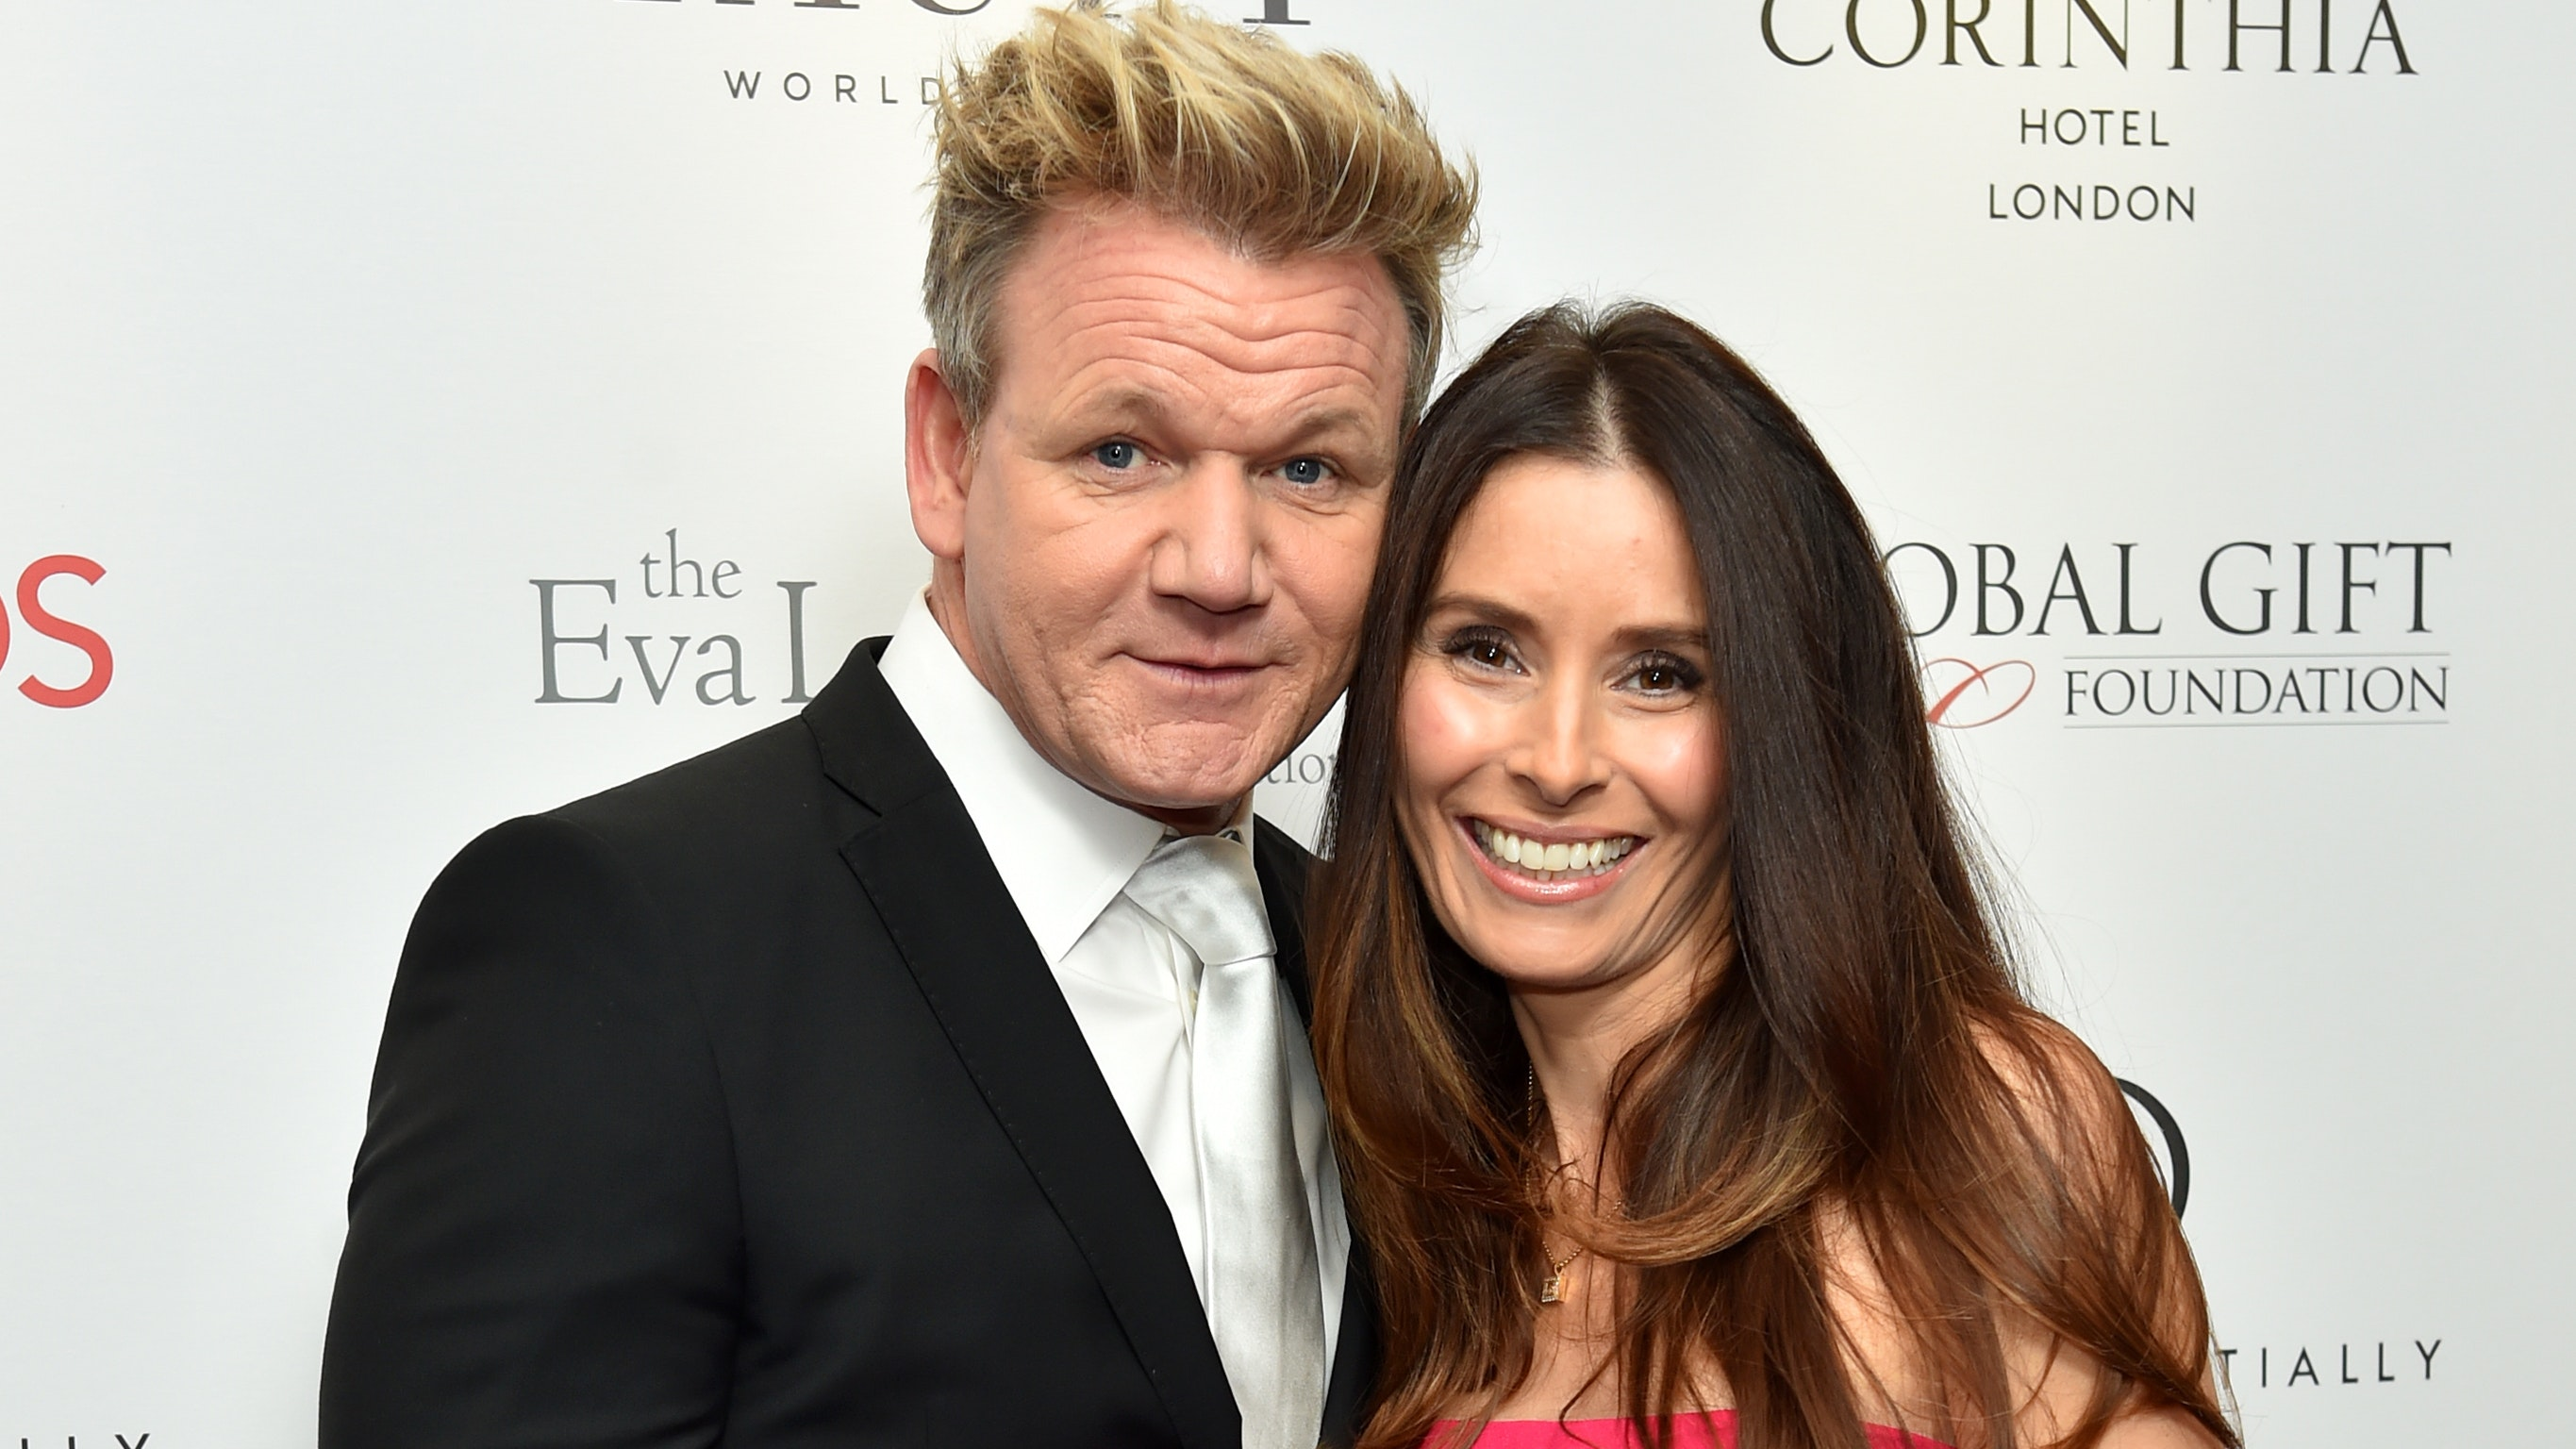 Gordon Ramsay and Wife Tana Welcome Baby Boy-Find Out His Name